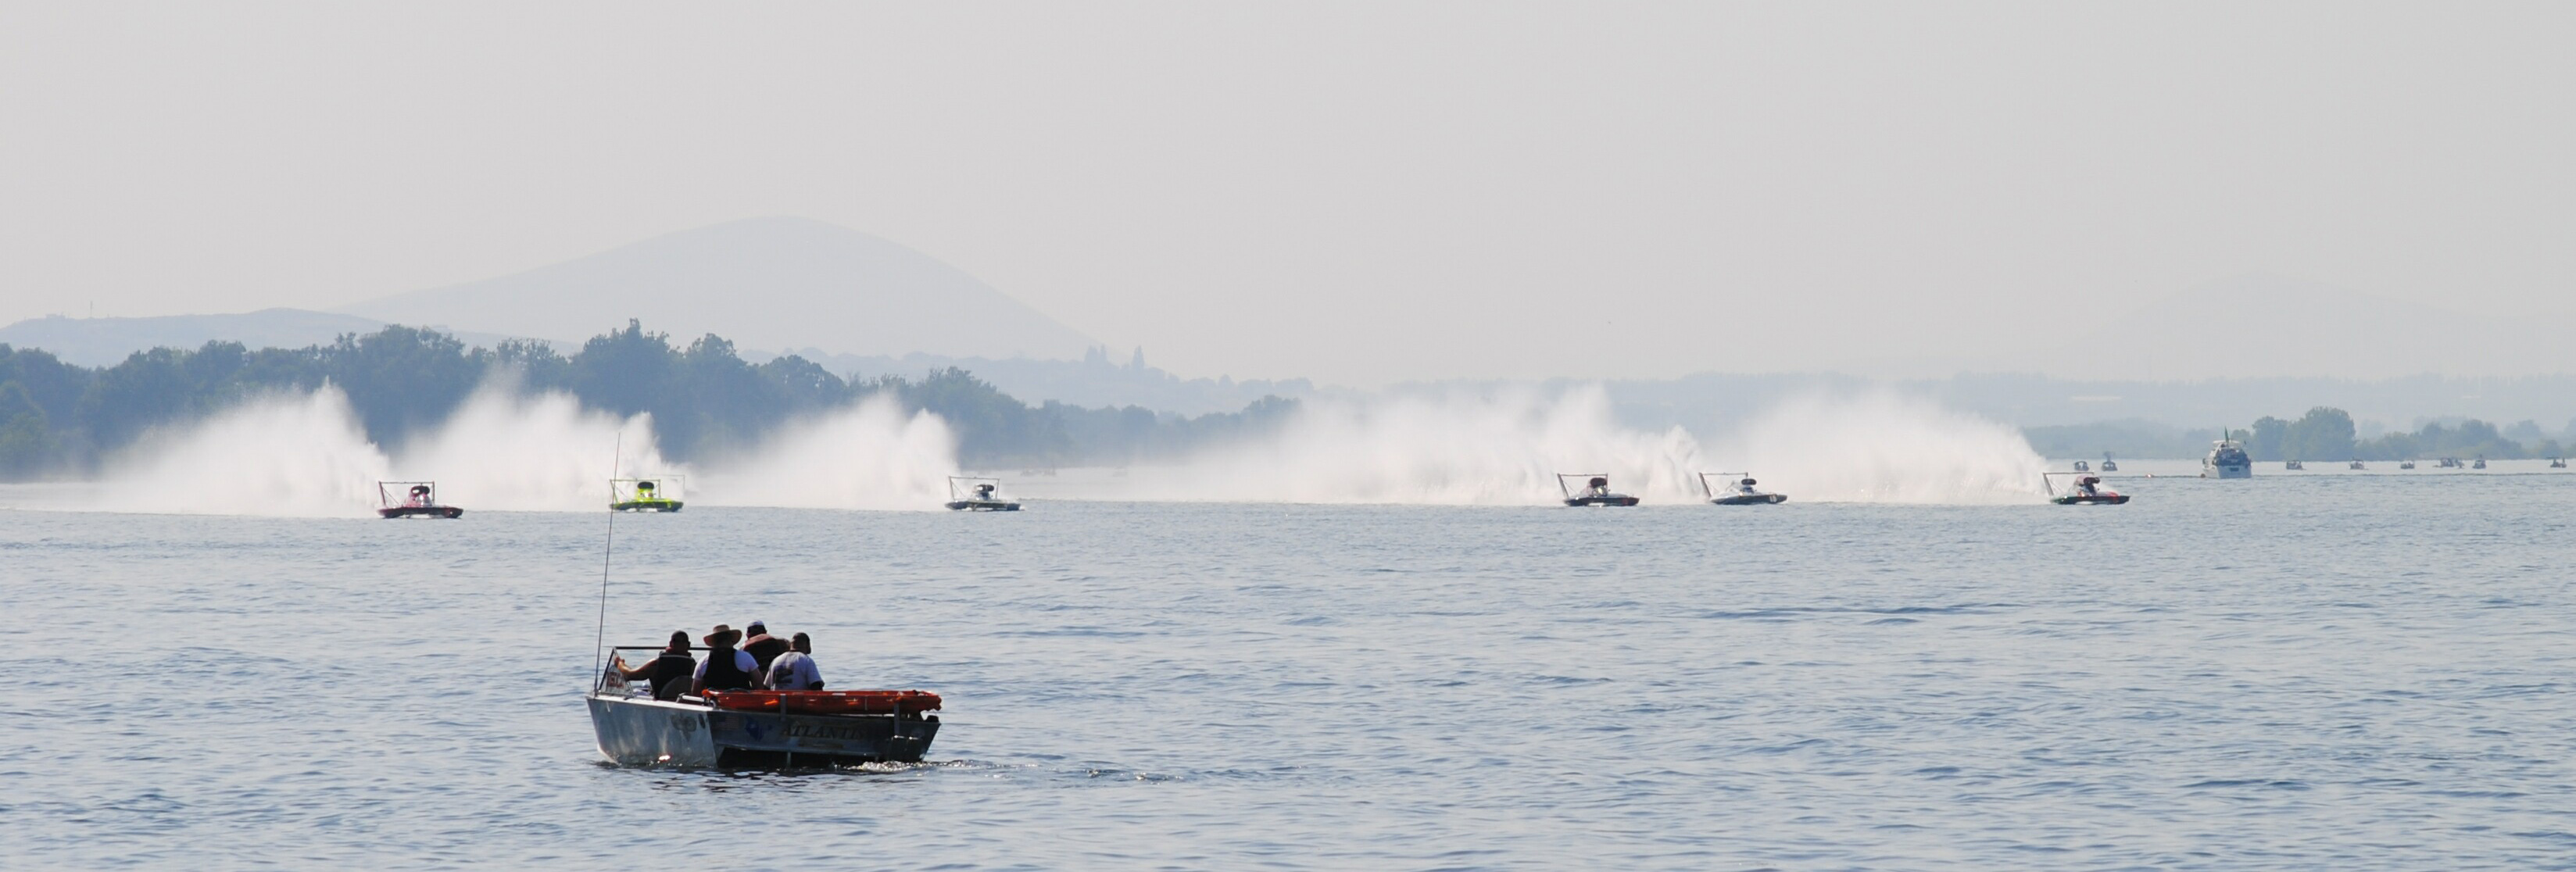 Steve David (far right) hits the line in lane 1 in the 1 Oh Boy! Oberto. Photo by Craig Barney